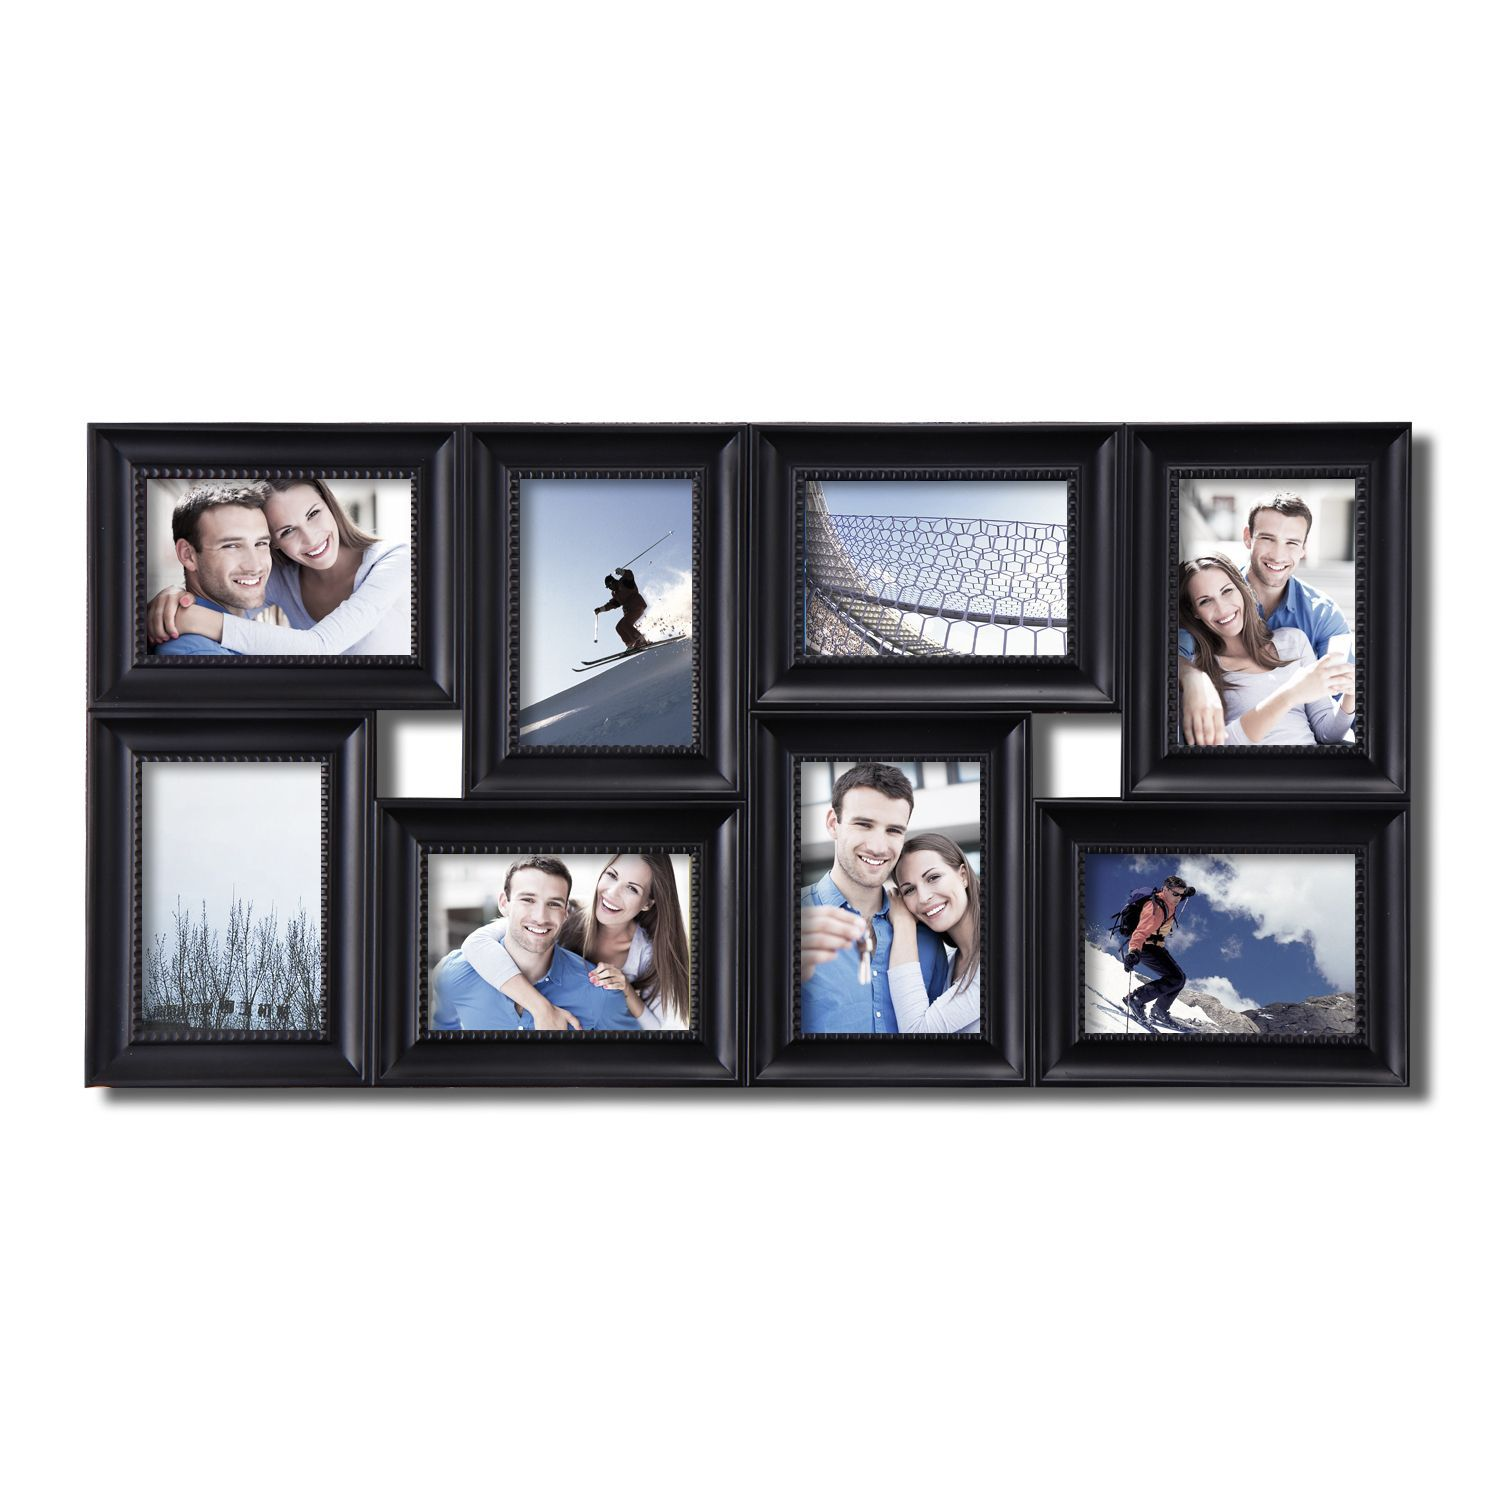 Adeco 8 Opening Black Plastic Photo Collage Frame Adeco 8 Opening